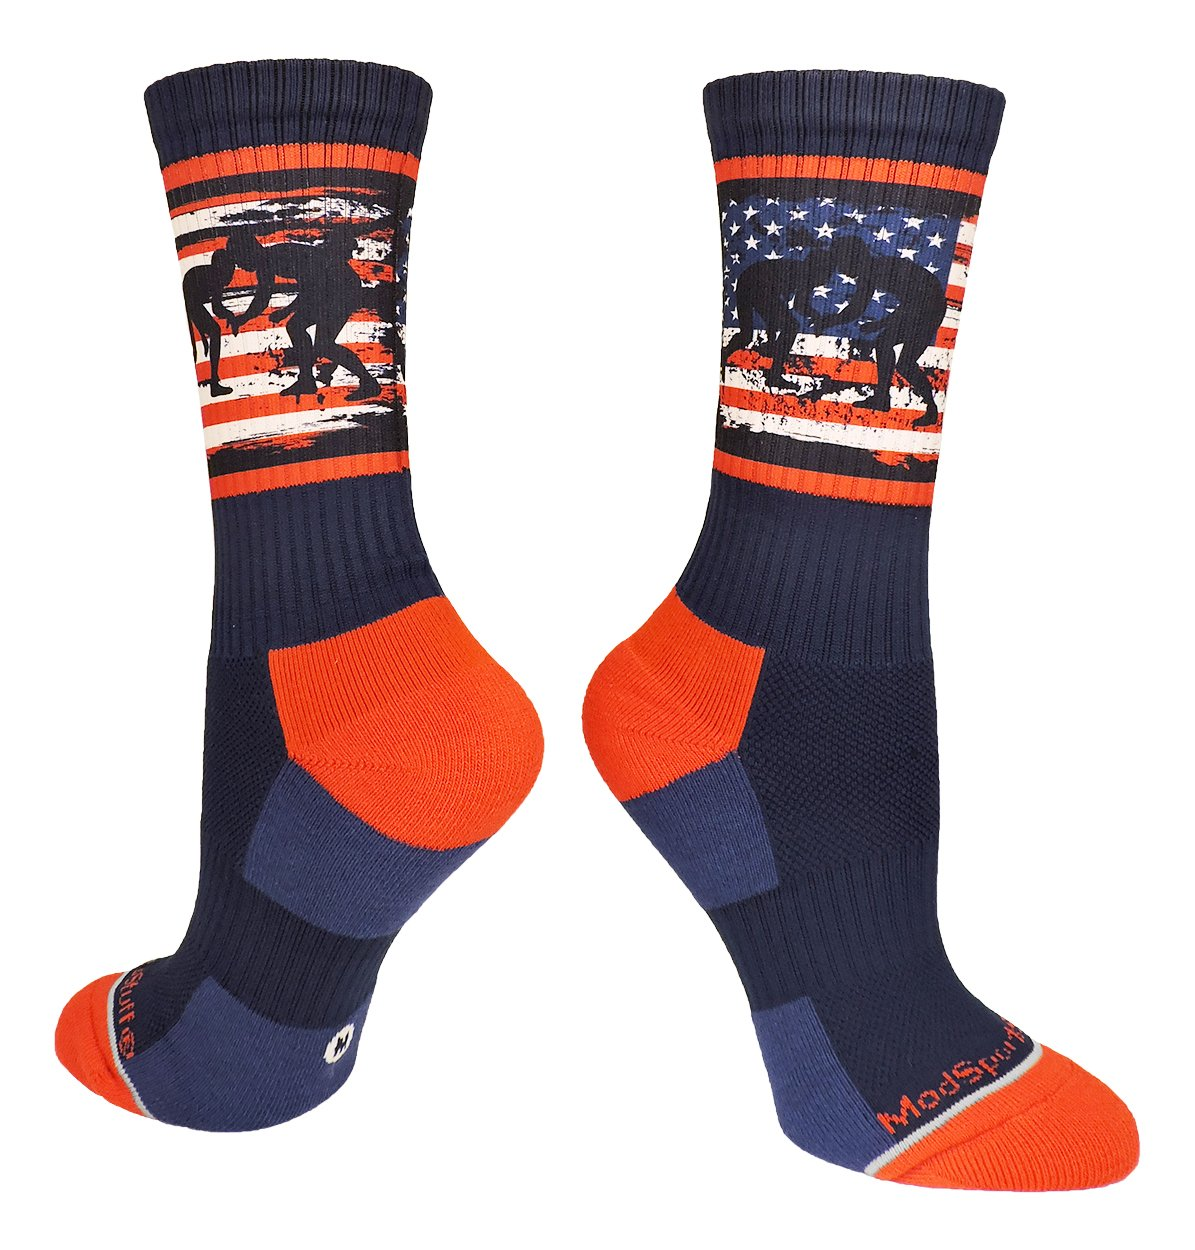 MadSportsStuff USA Flag Fighting Wrestlers Crew Socks (Navy/Red/White, Large)